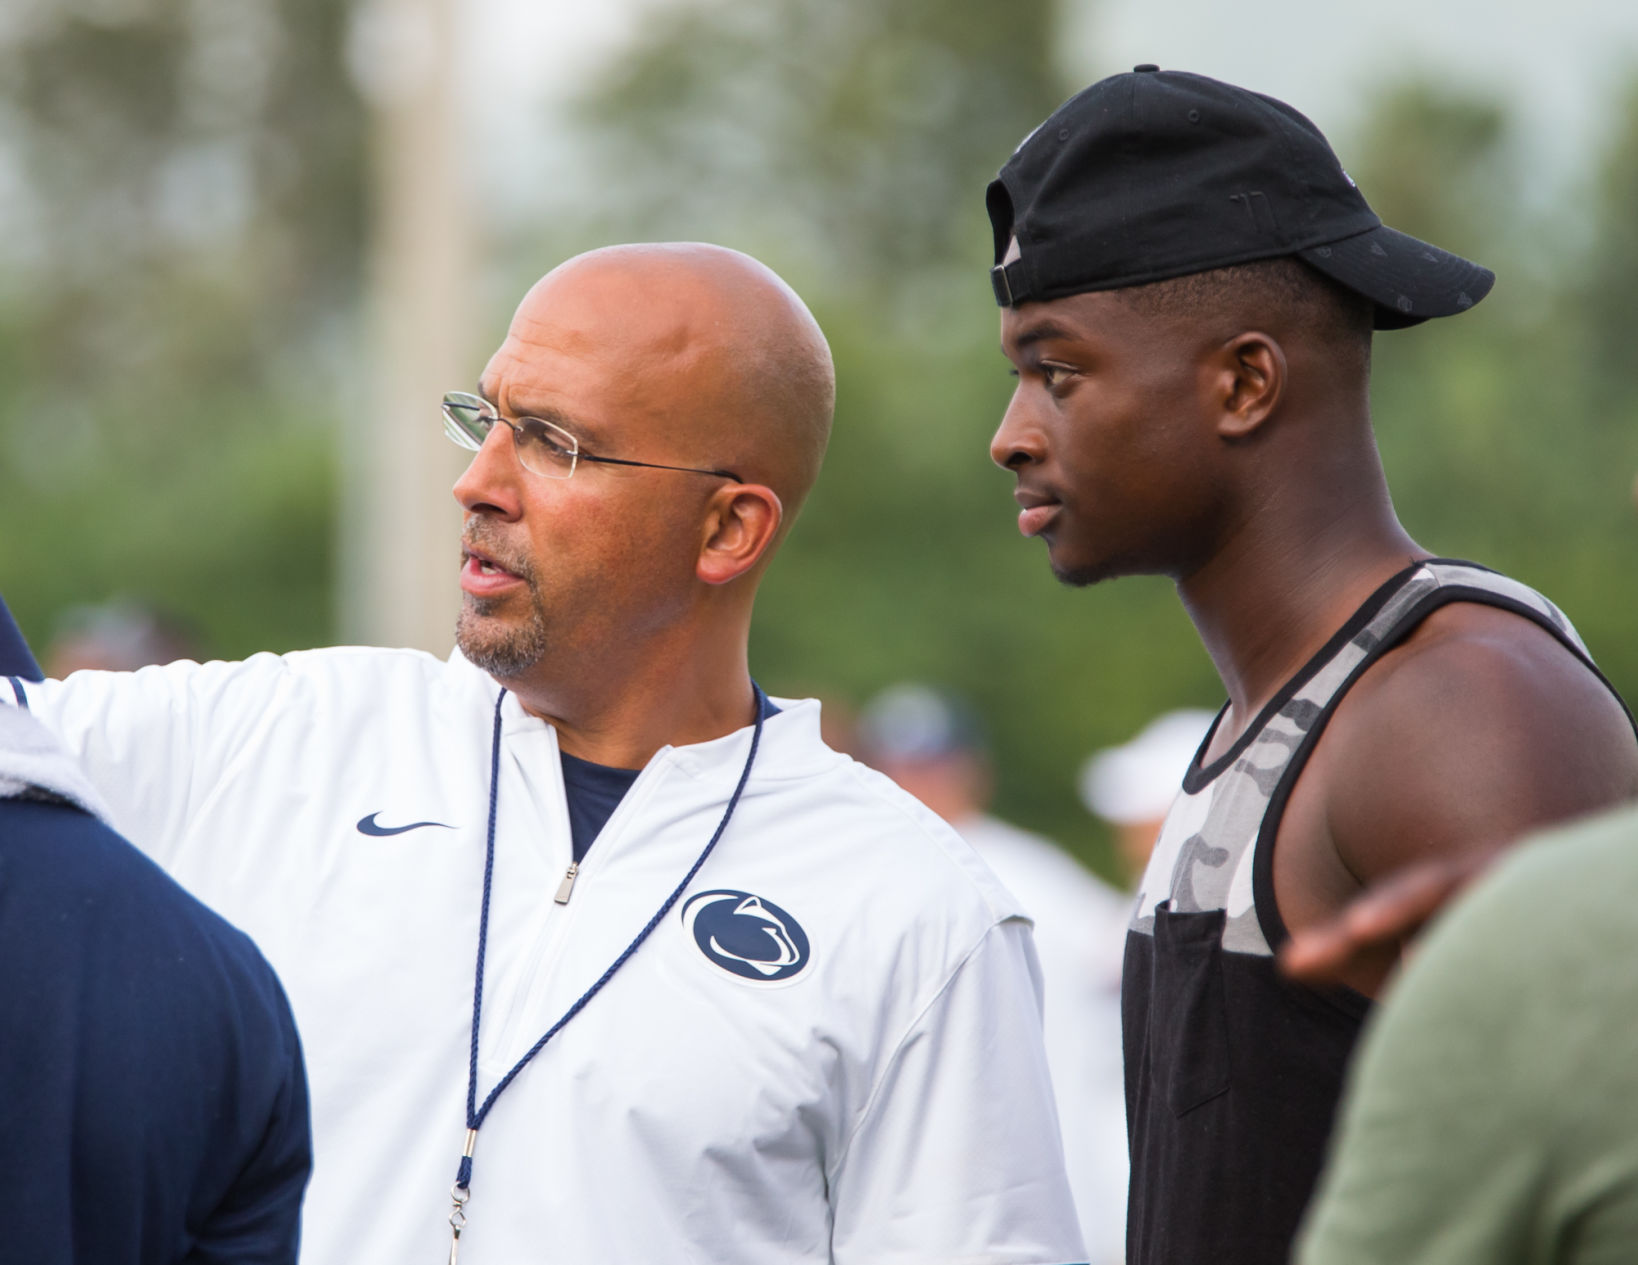 Penn State Achieves Highest Preseason Ranking In AP Poll In 18 Years